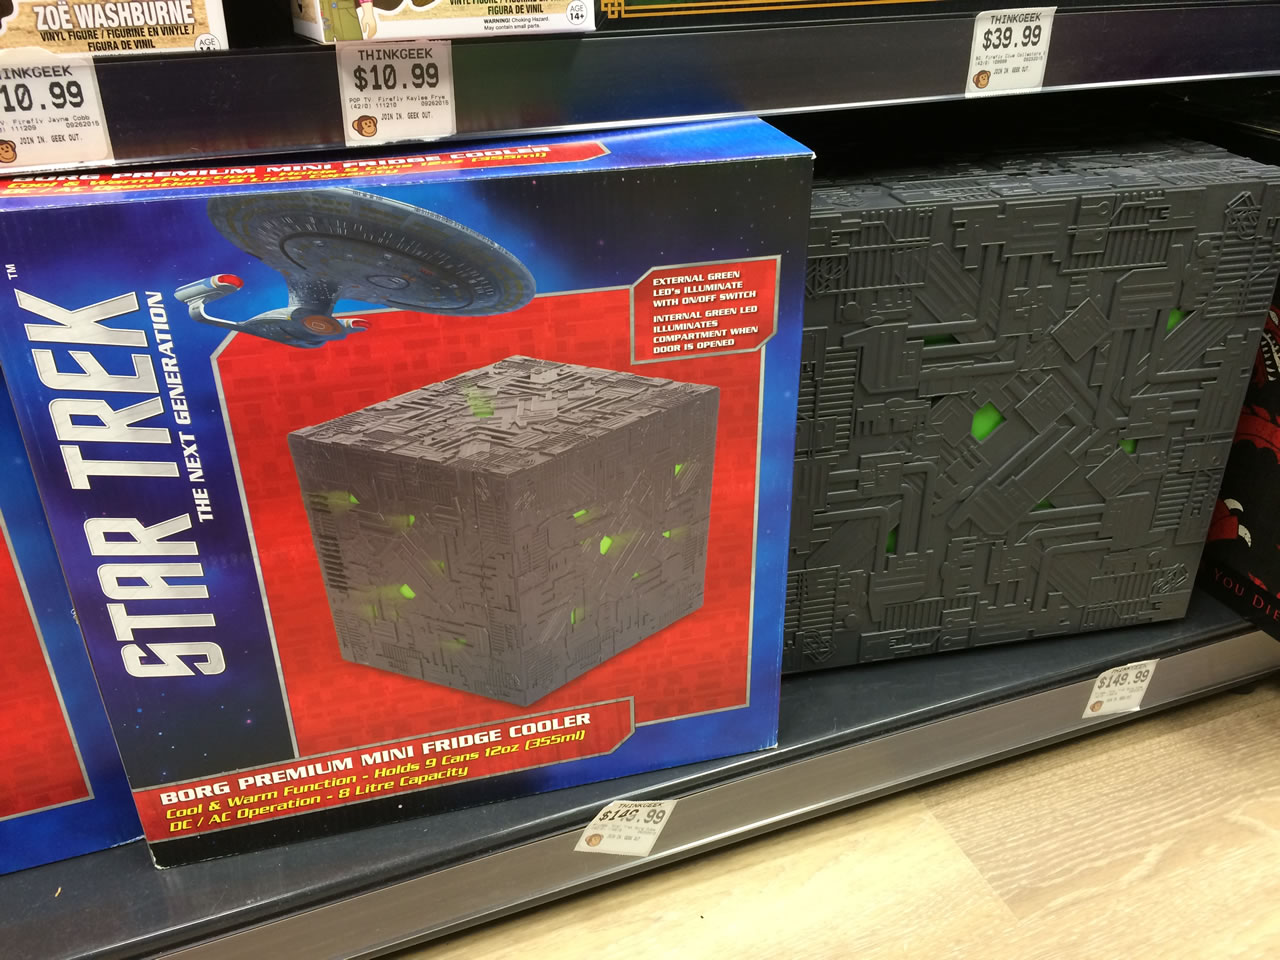 66 thinkgeek store - borg cube fridge